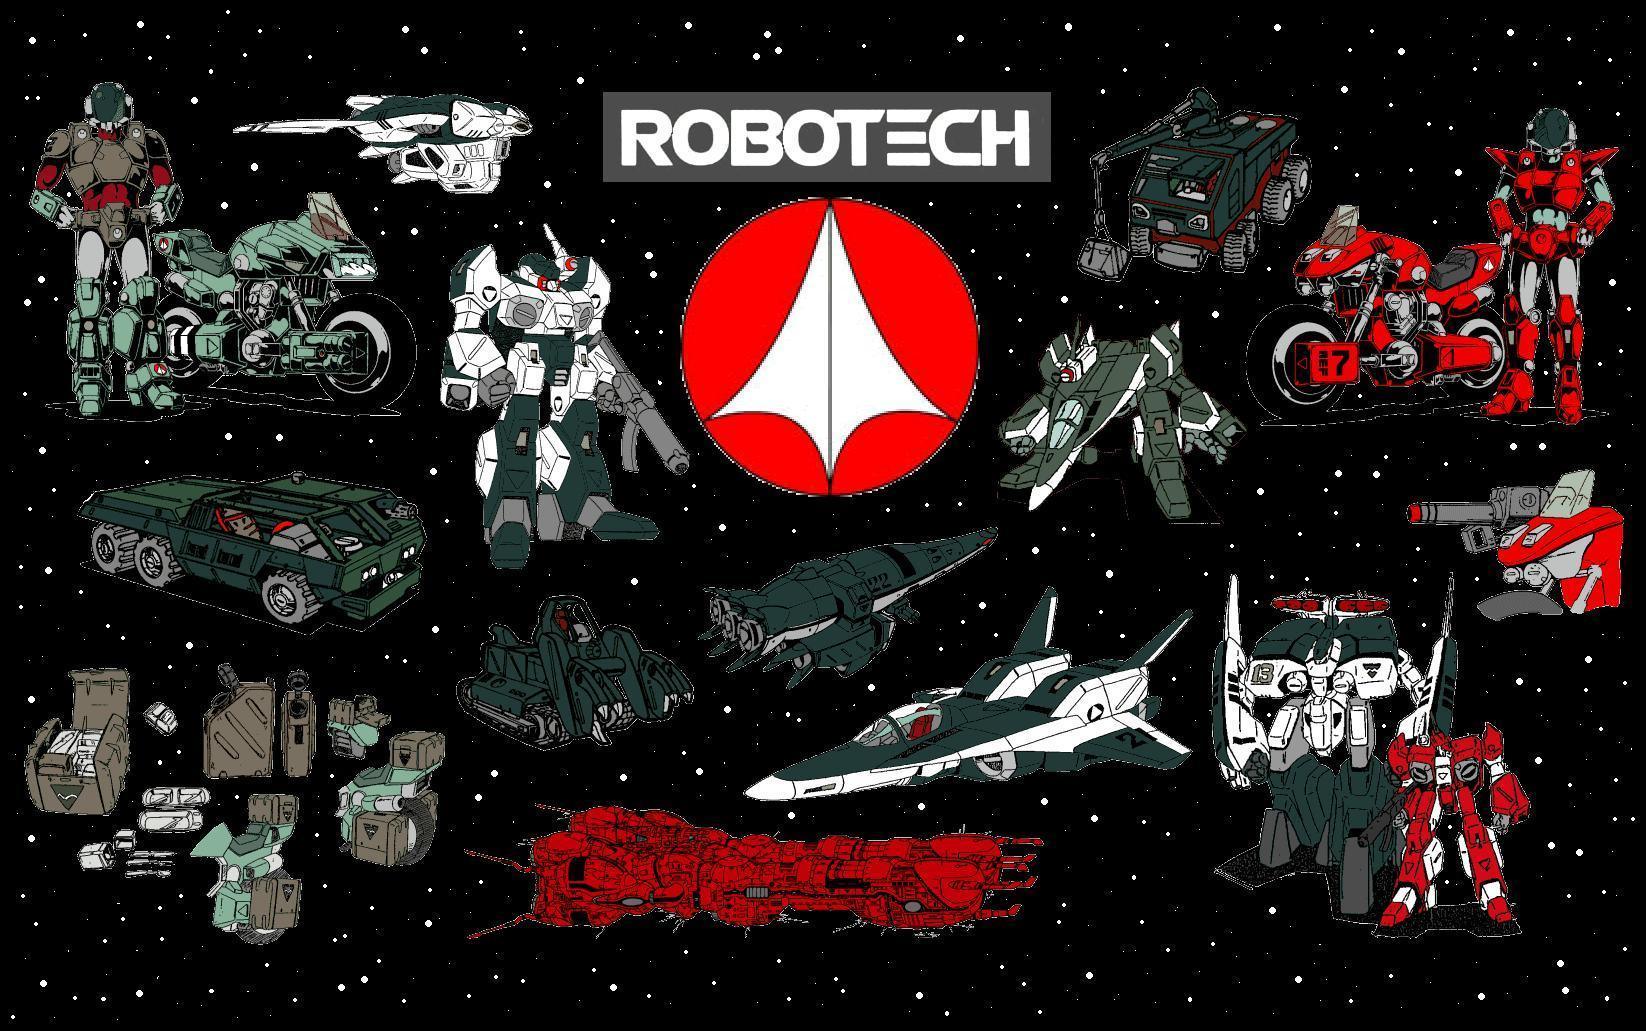 Transformers Logo Wallpaper Hd Join The Ref Play With Awesome Toys Robotech Fan Art